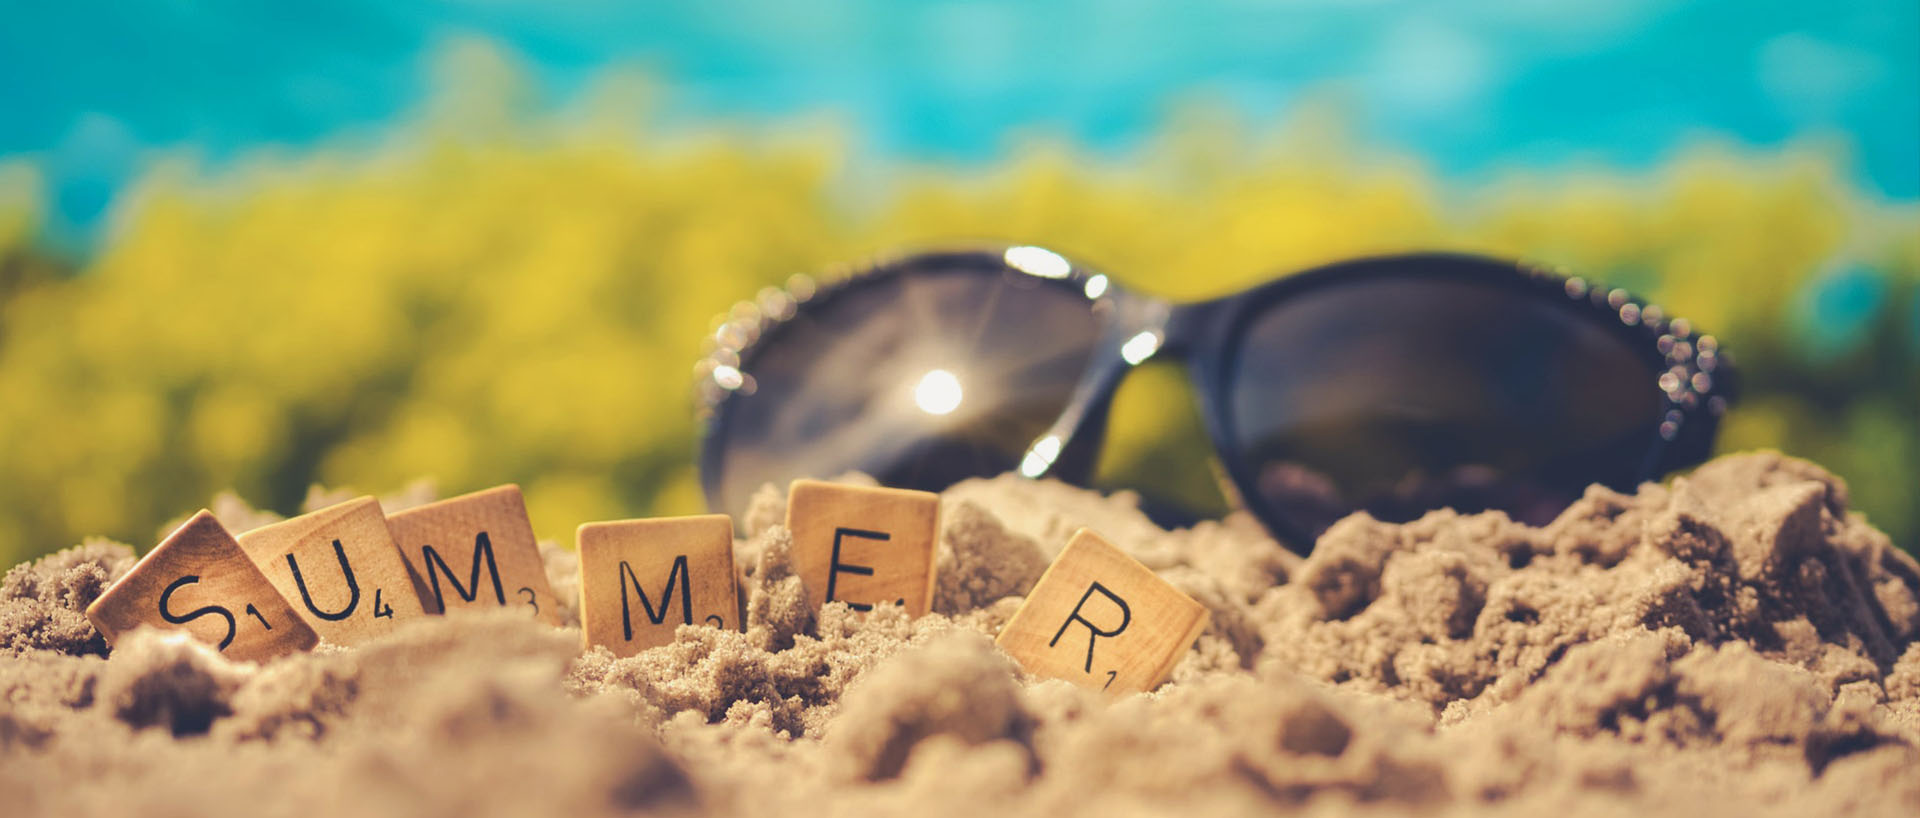 Keeping Cool - Tips for Beating the Summer Heat